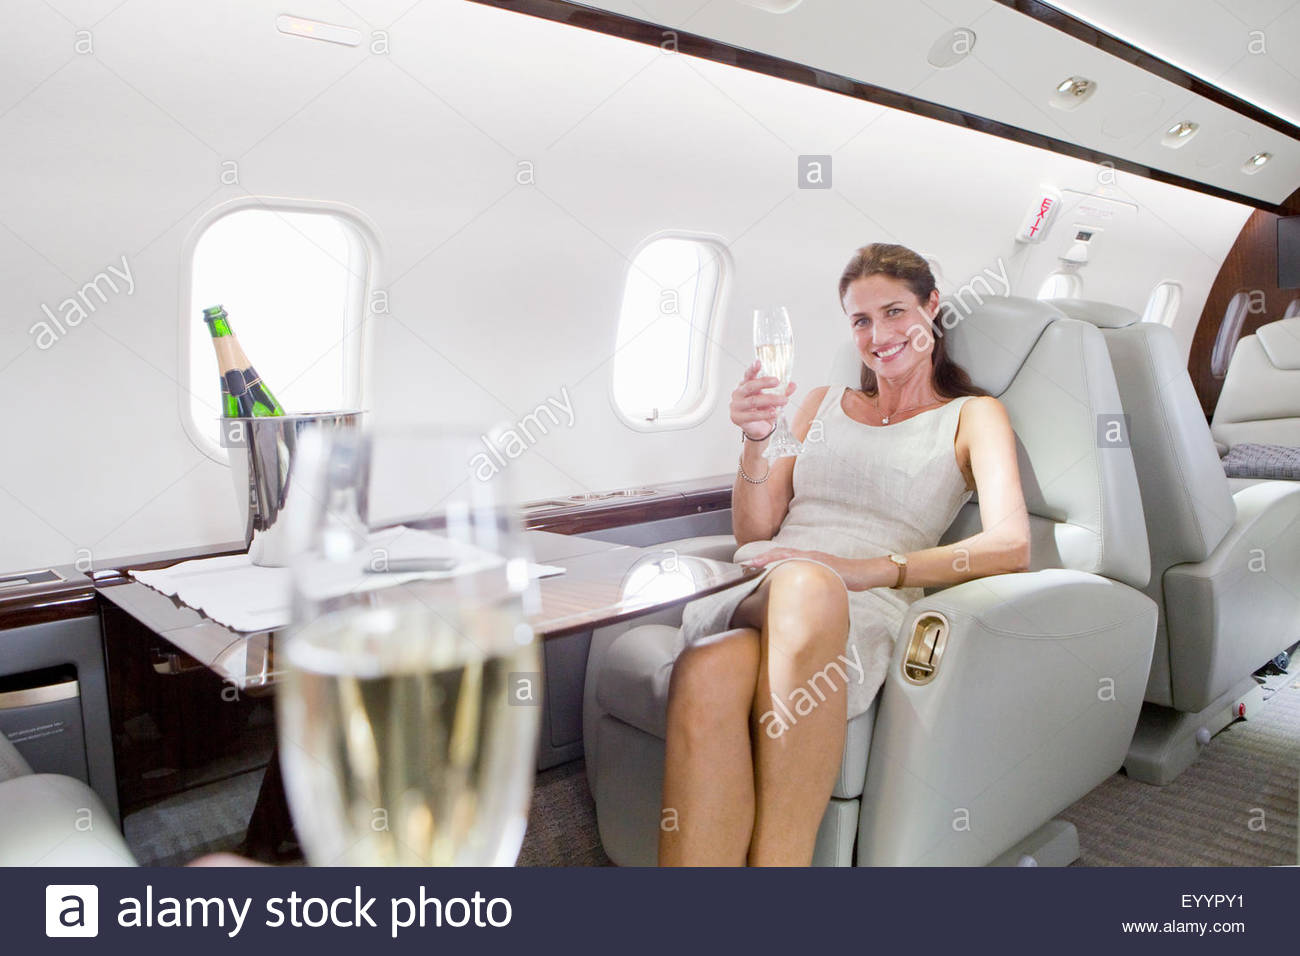 Luxury Woman On Airplane : Attractive woman sitting and holding champagne glass in